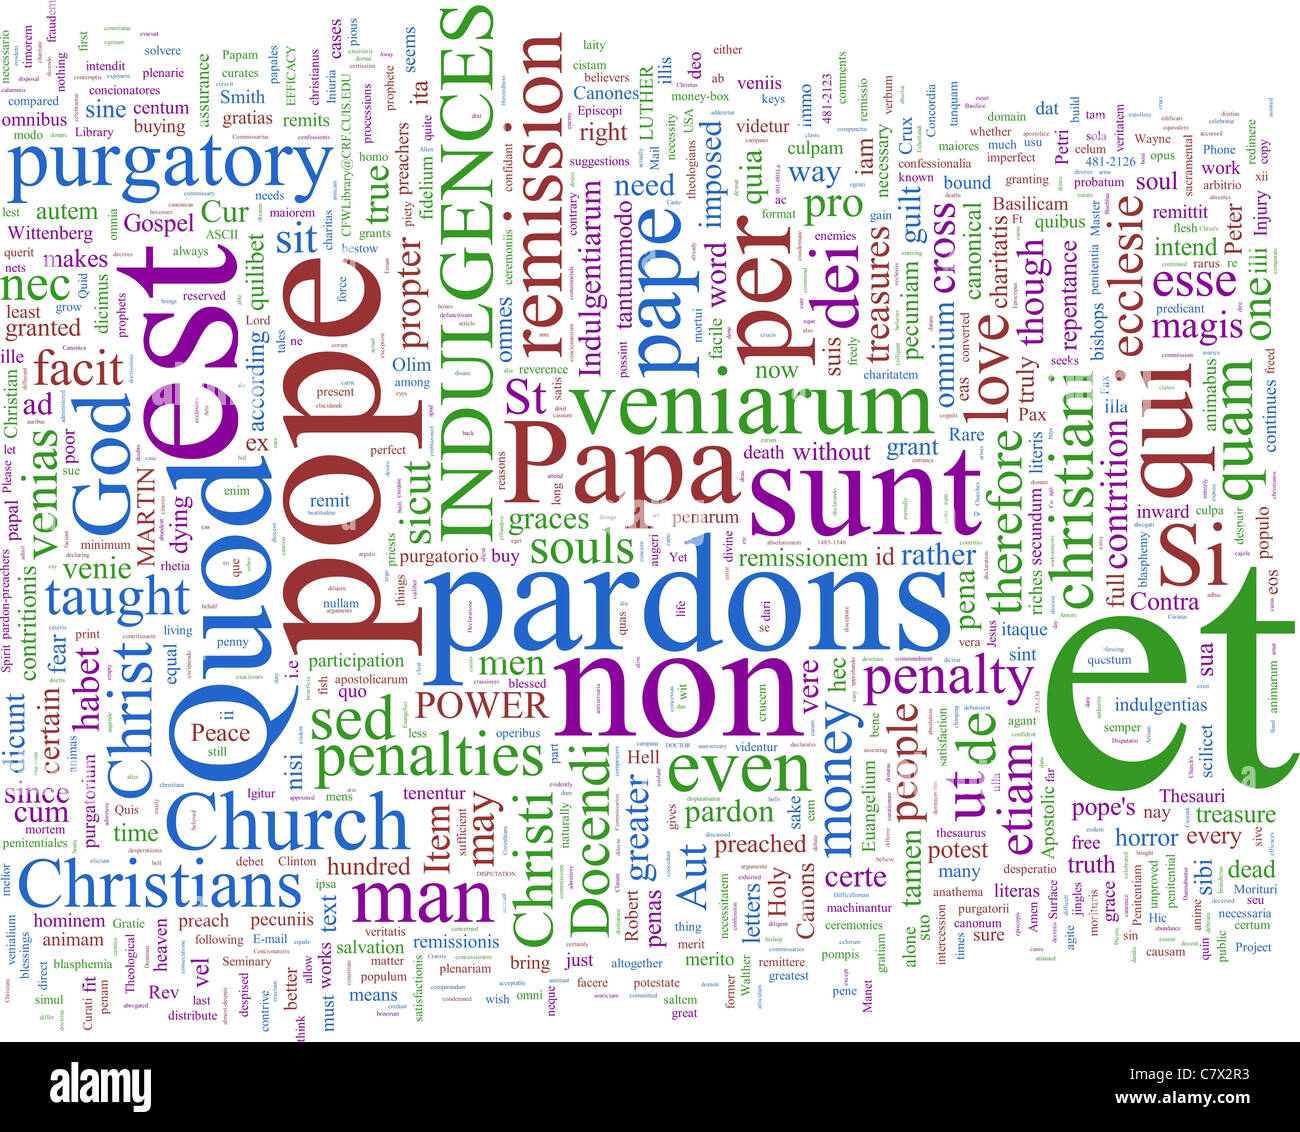 A word cloud based on Martin Luther's 95 theses - Stock Image